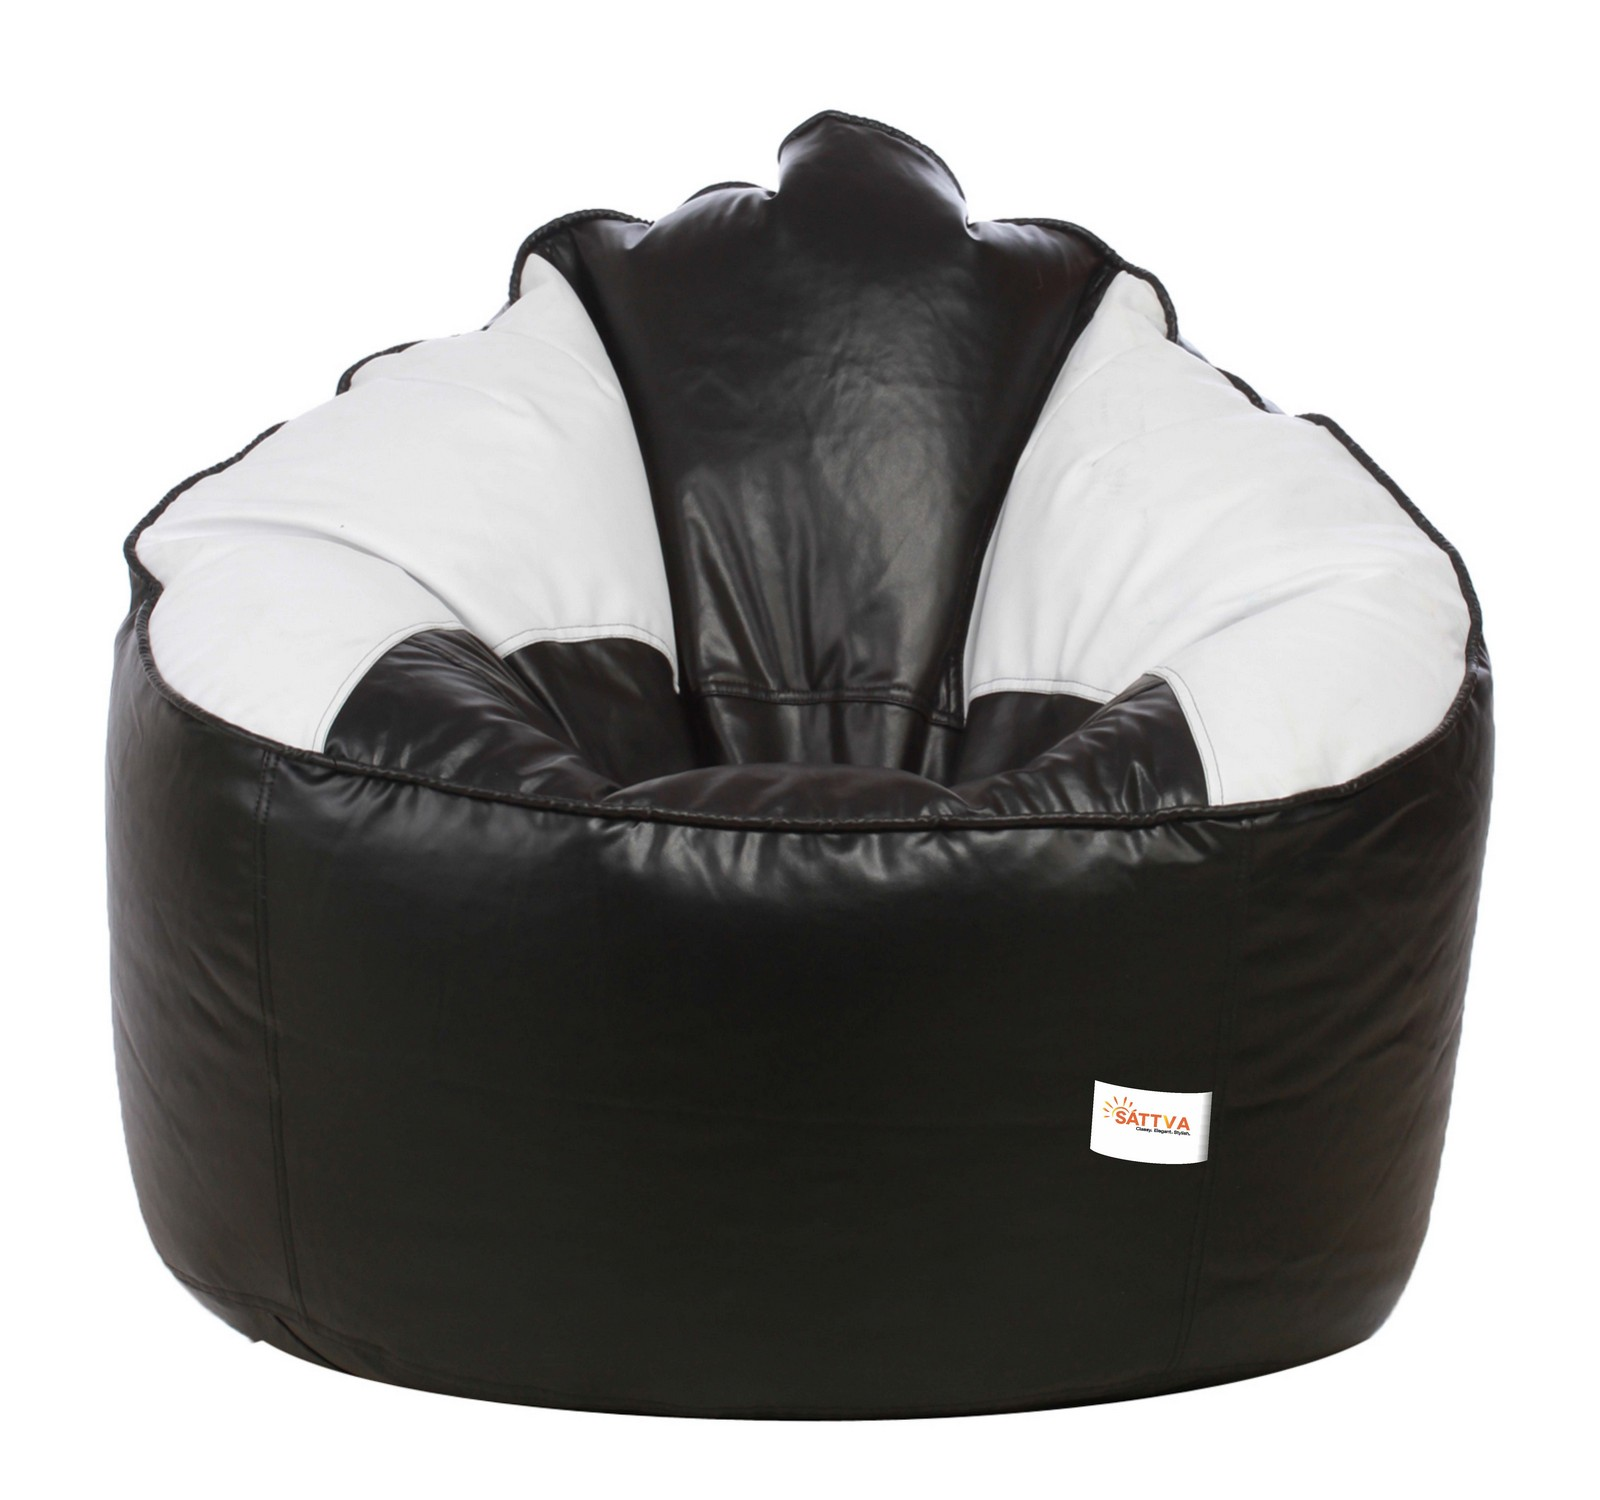 Sattva Muddha Sofa XXXL Bean Bag (with Beans ) Dual  - Black And White